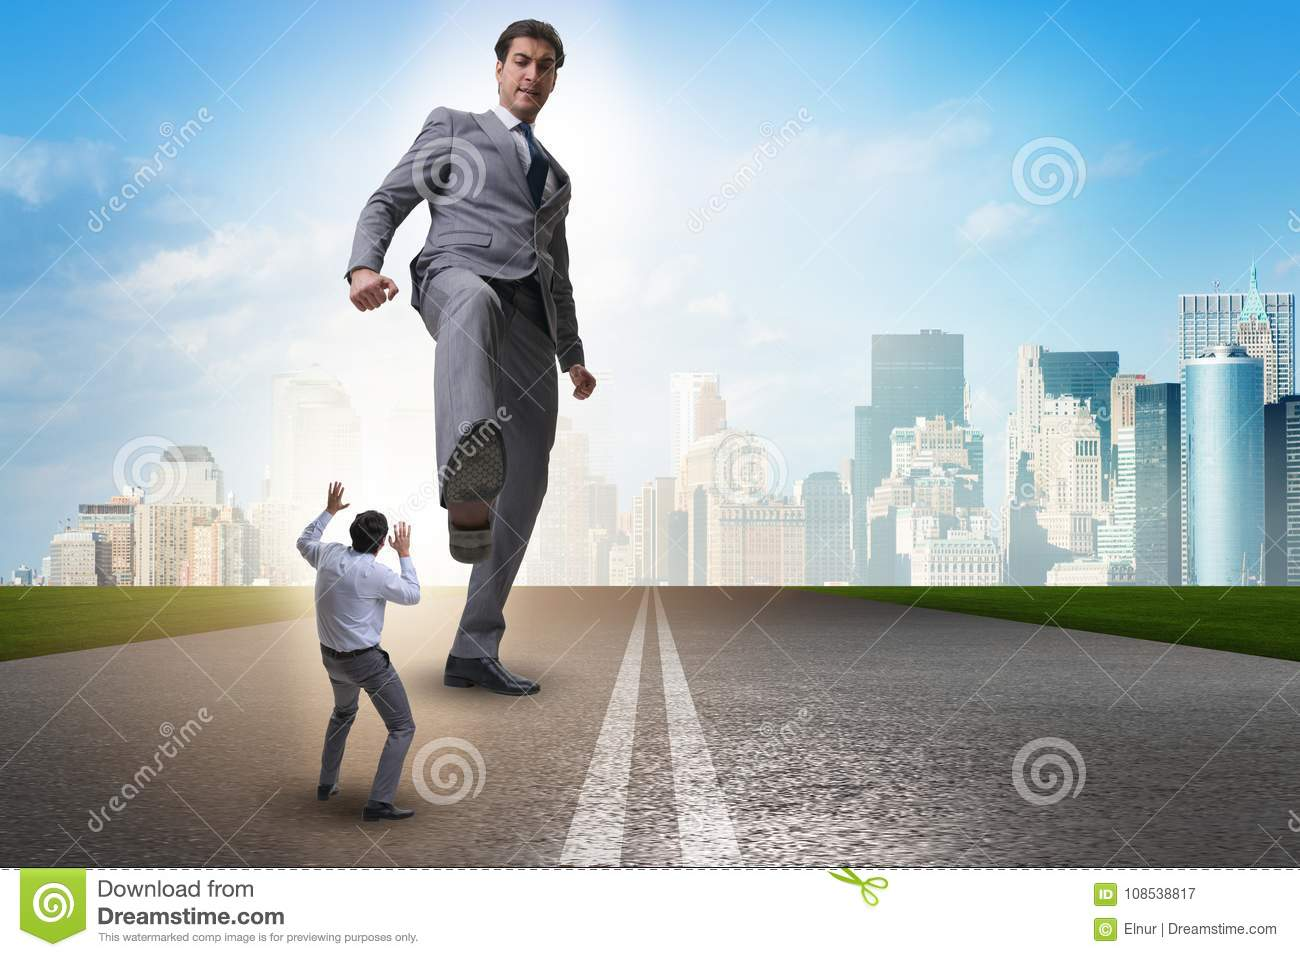 The bad angry boss kicking employee in business concept